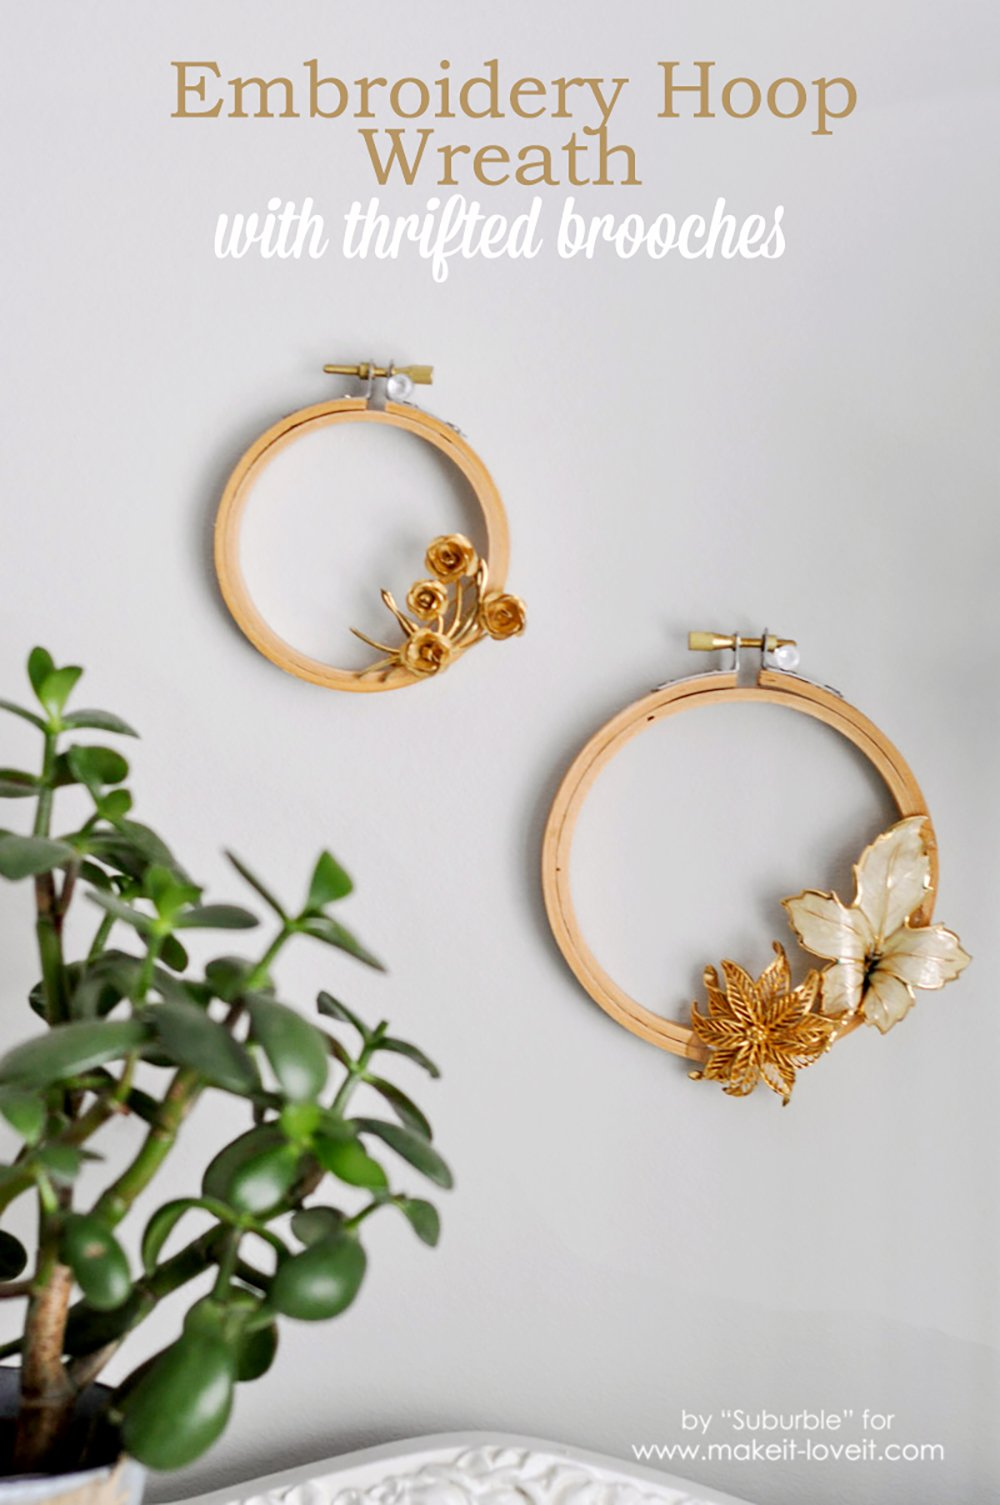 Embroidery hoop wreaths with thrifted brooches